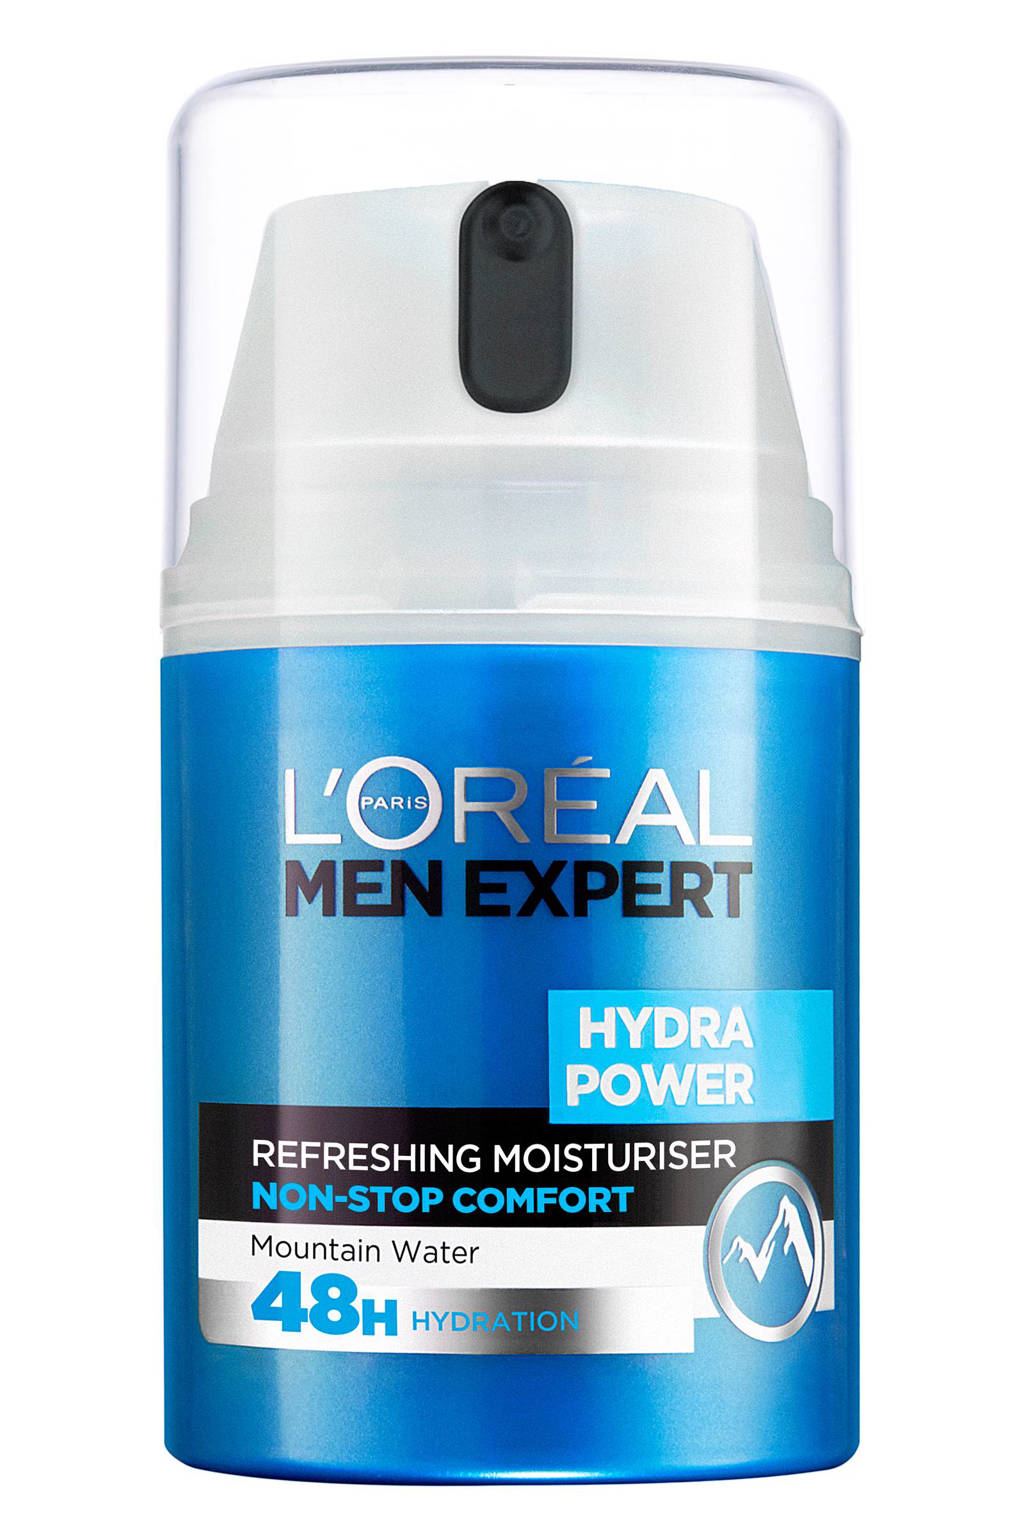 L'Oréal Paris Men Expert Hydra Power dagcrème - 50 ml